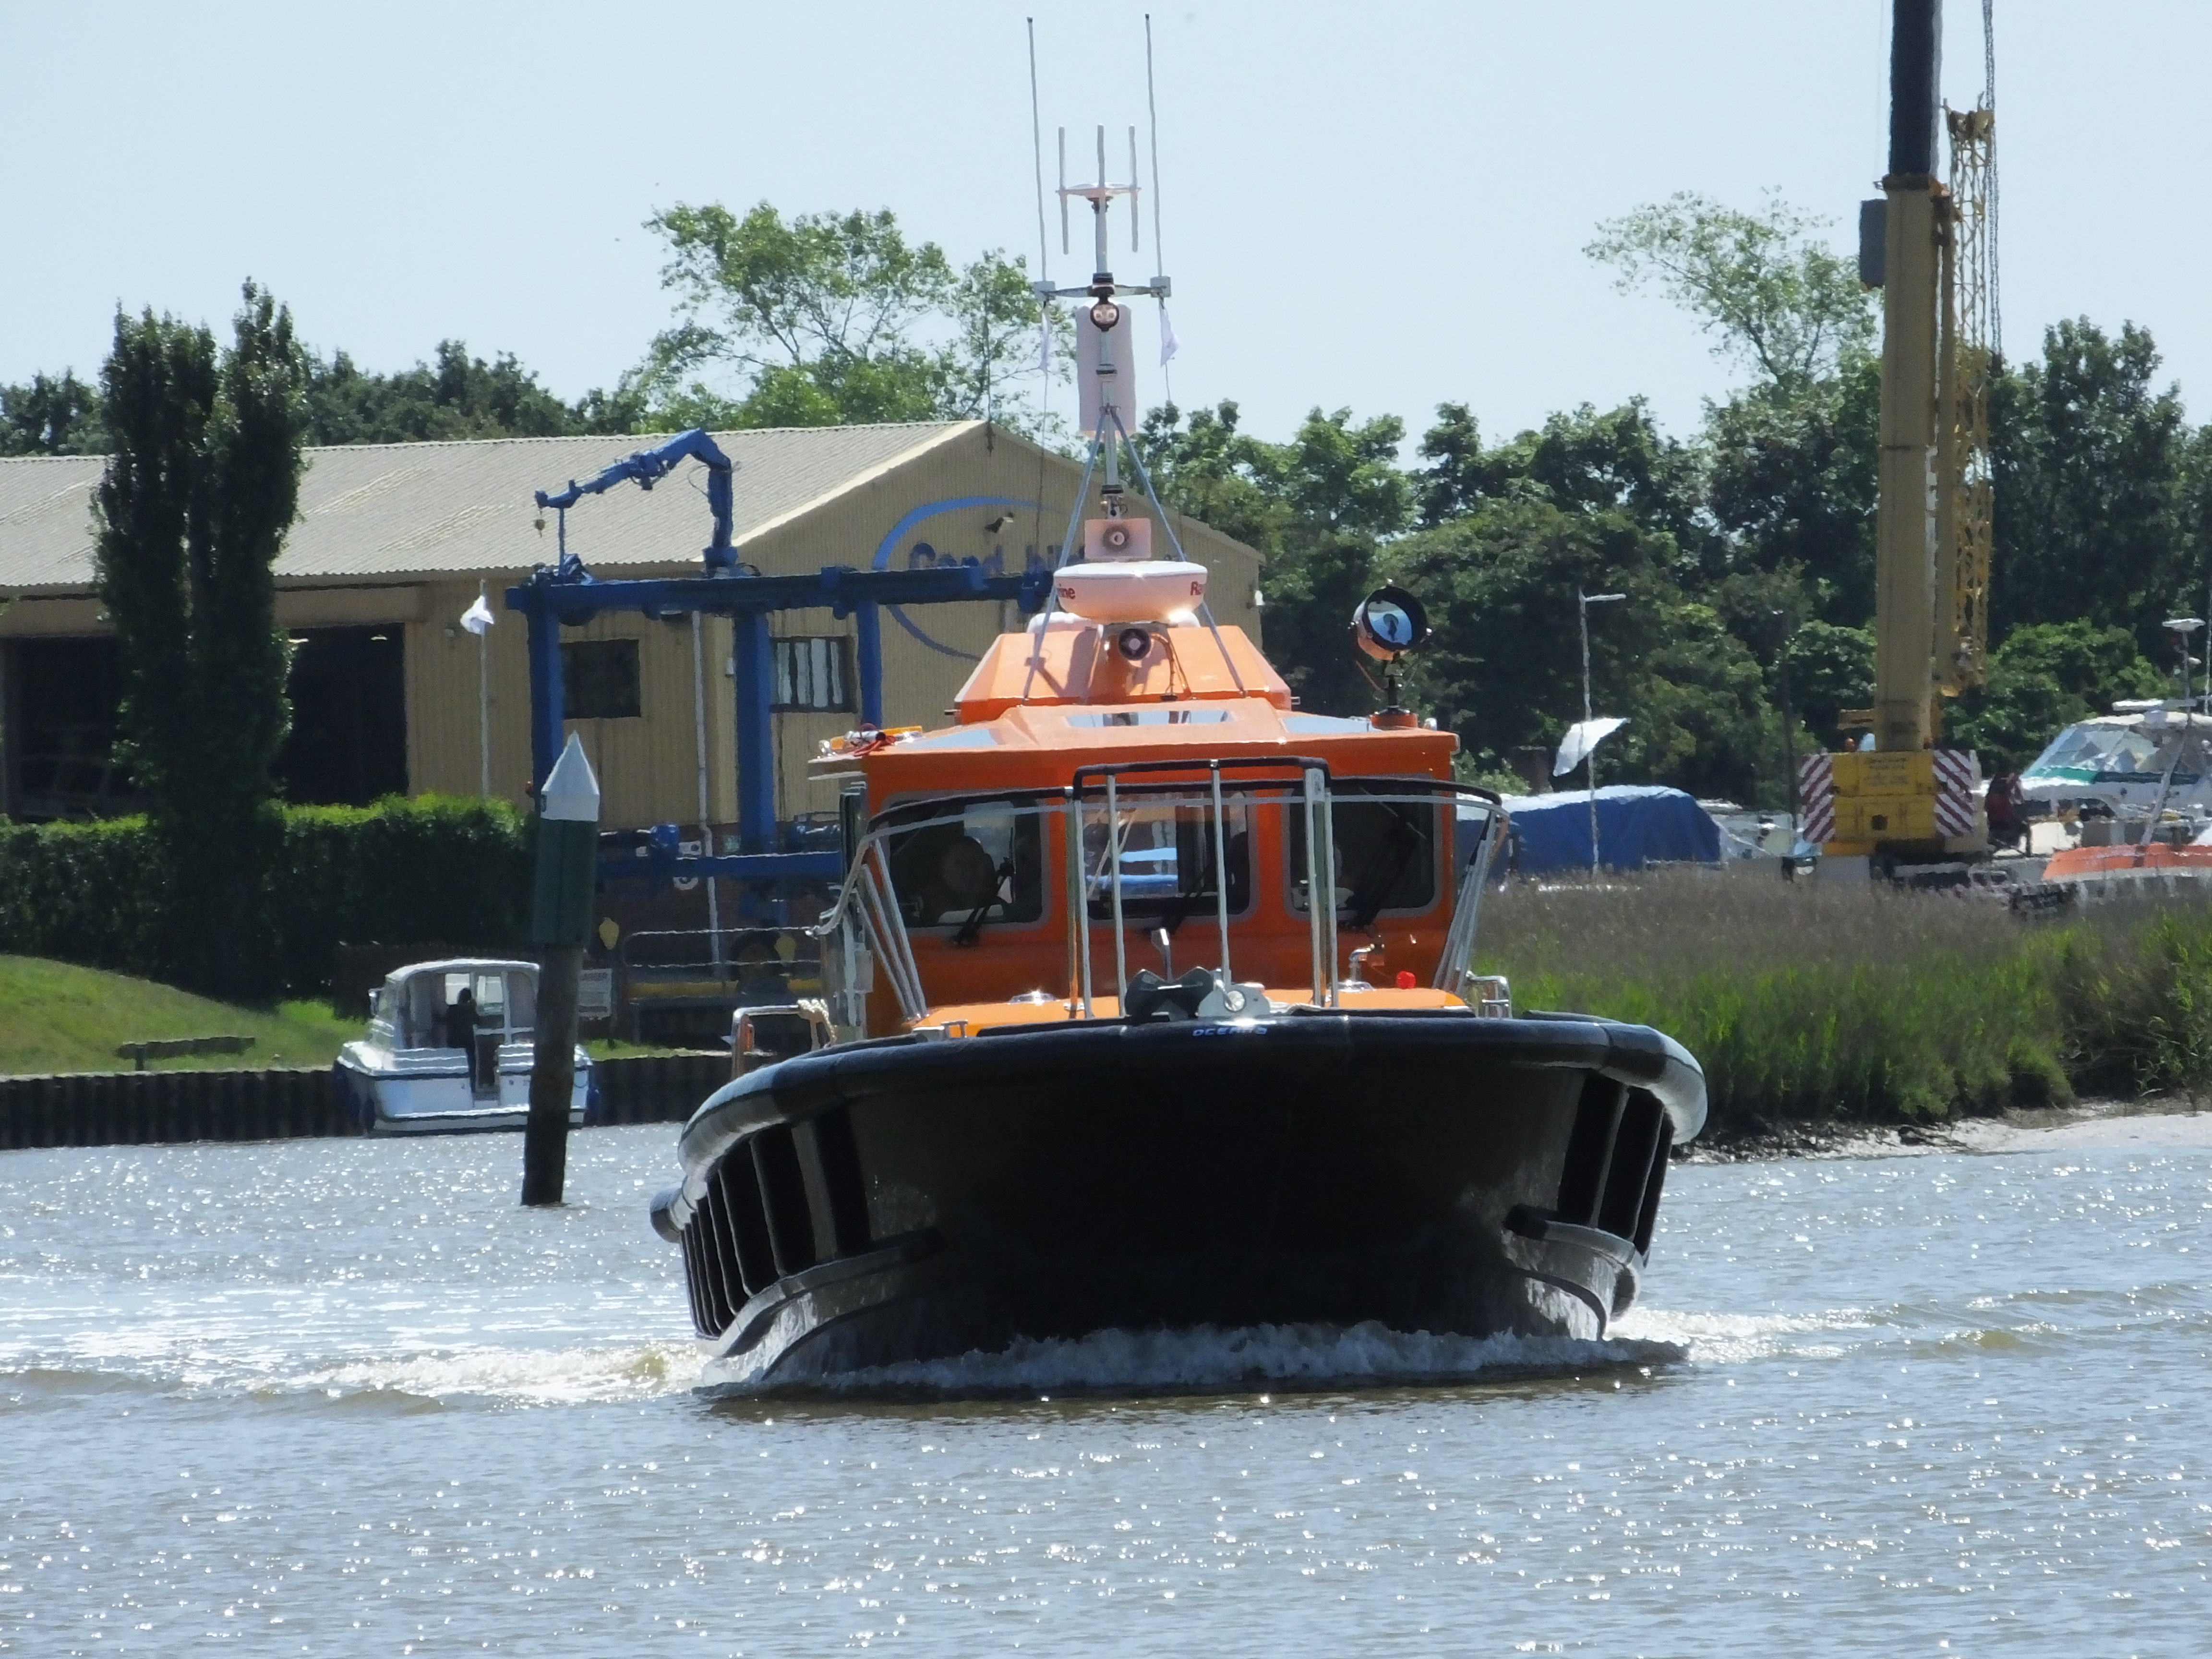 Pilot boat, Shoreham Harbour